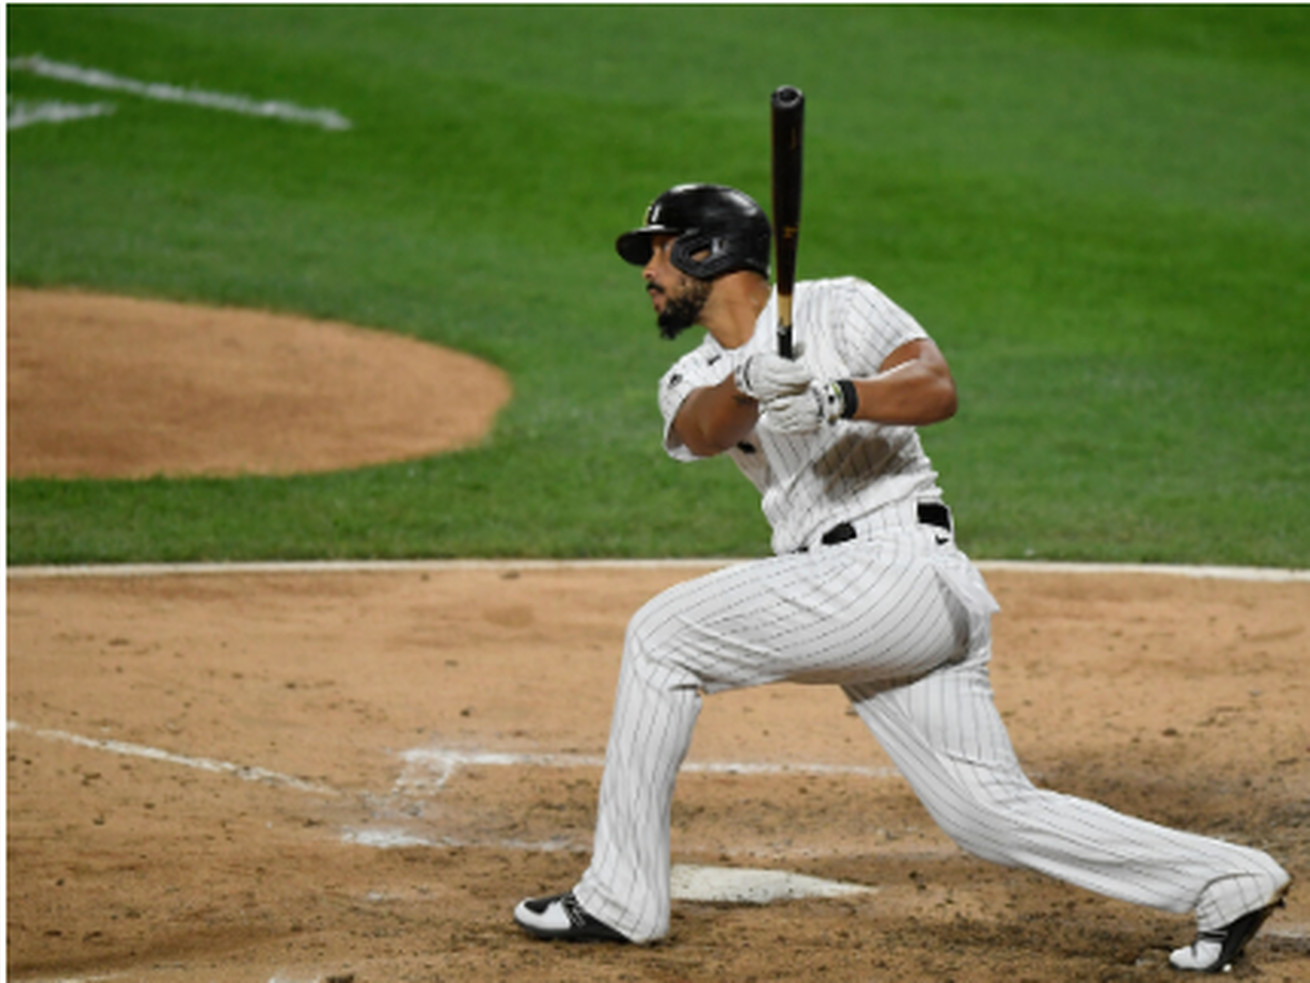 Cubs, Sox did a lot well on their way to playoffs